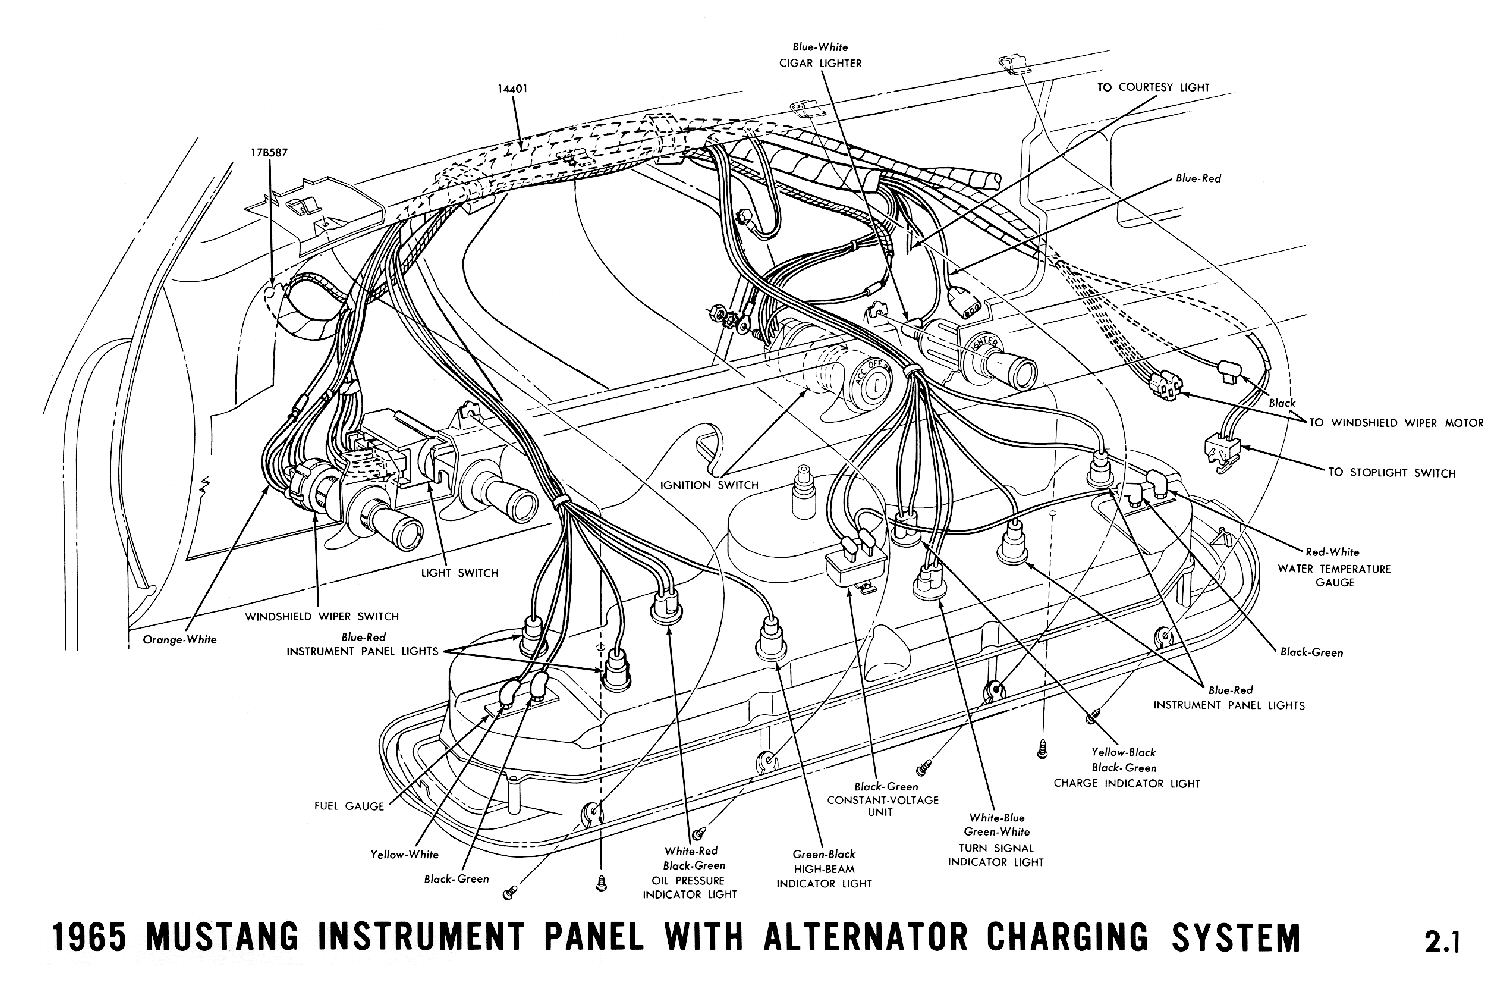 1965a 1965 mustang wiring diagrams average joe restoration mustang wire harness at bayanpartner.co